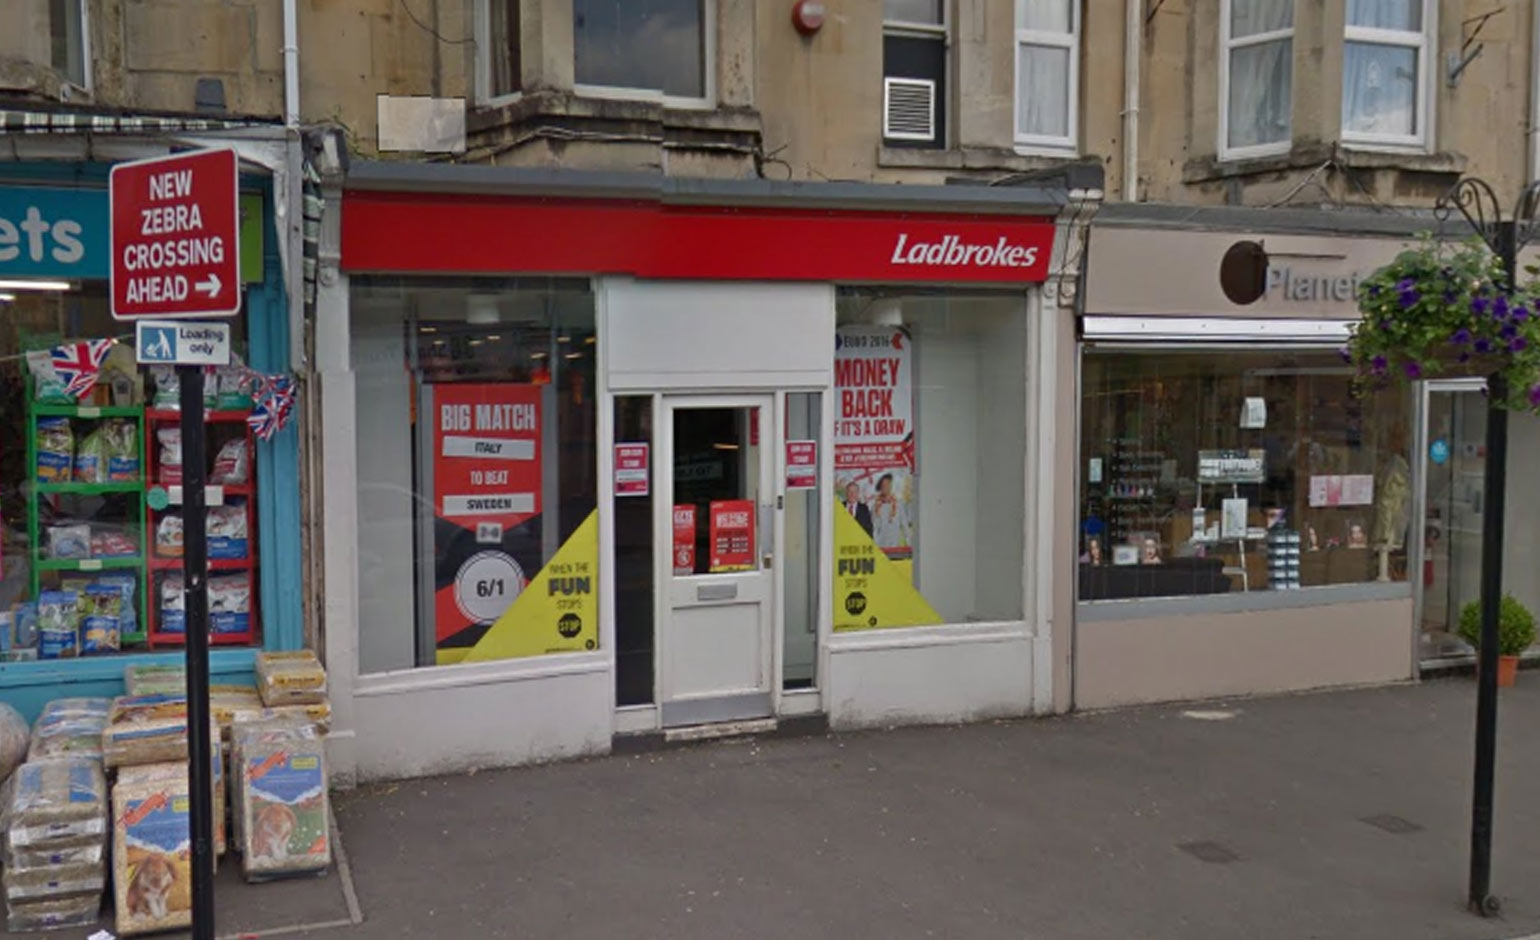 Man arrested by police following robbery at Ladbrokes on Moorland Road